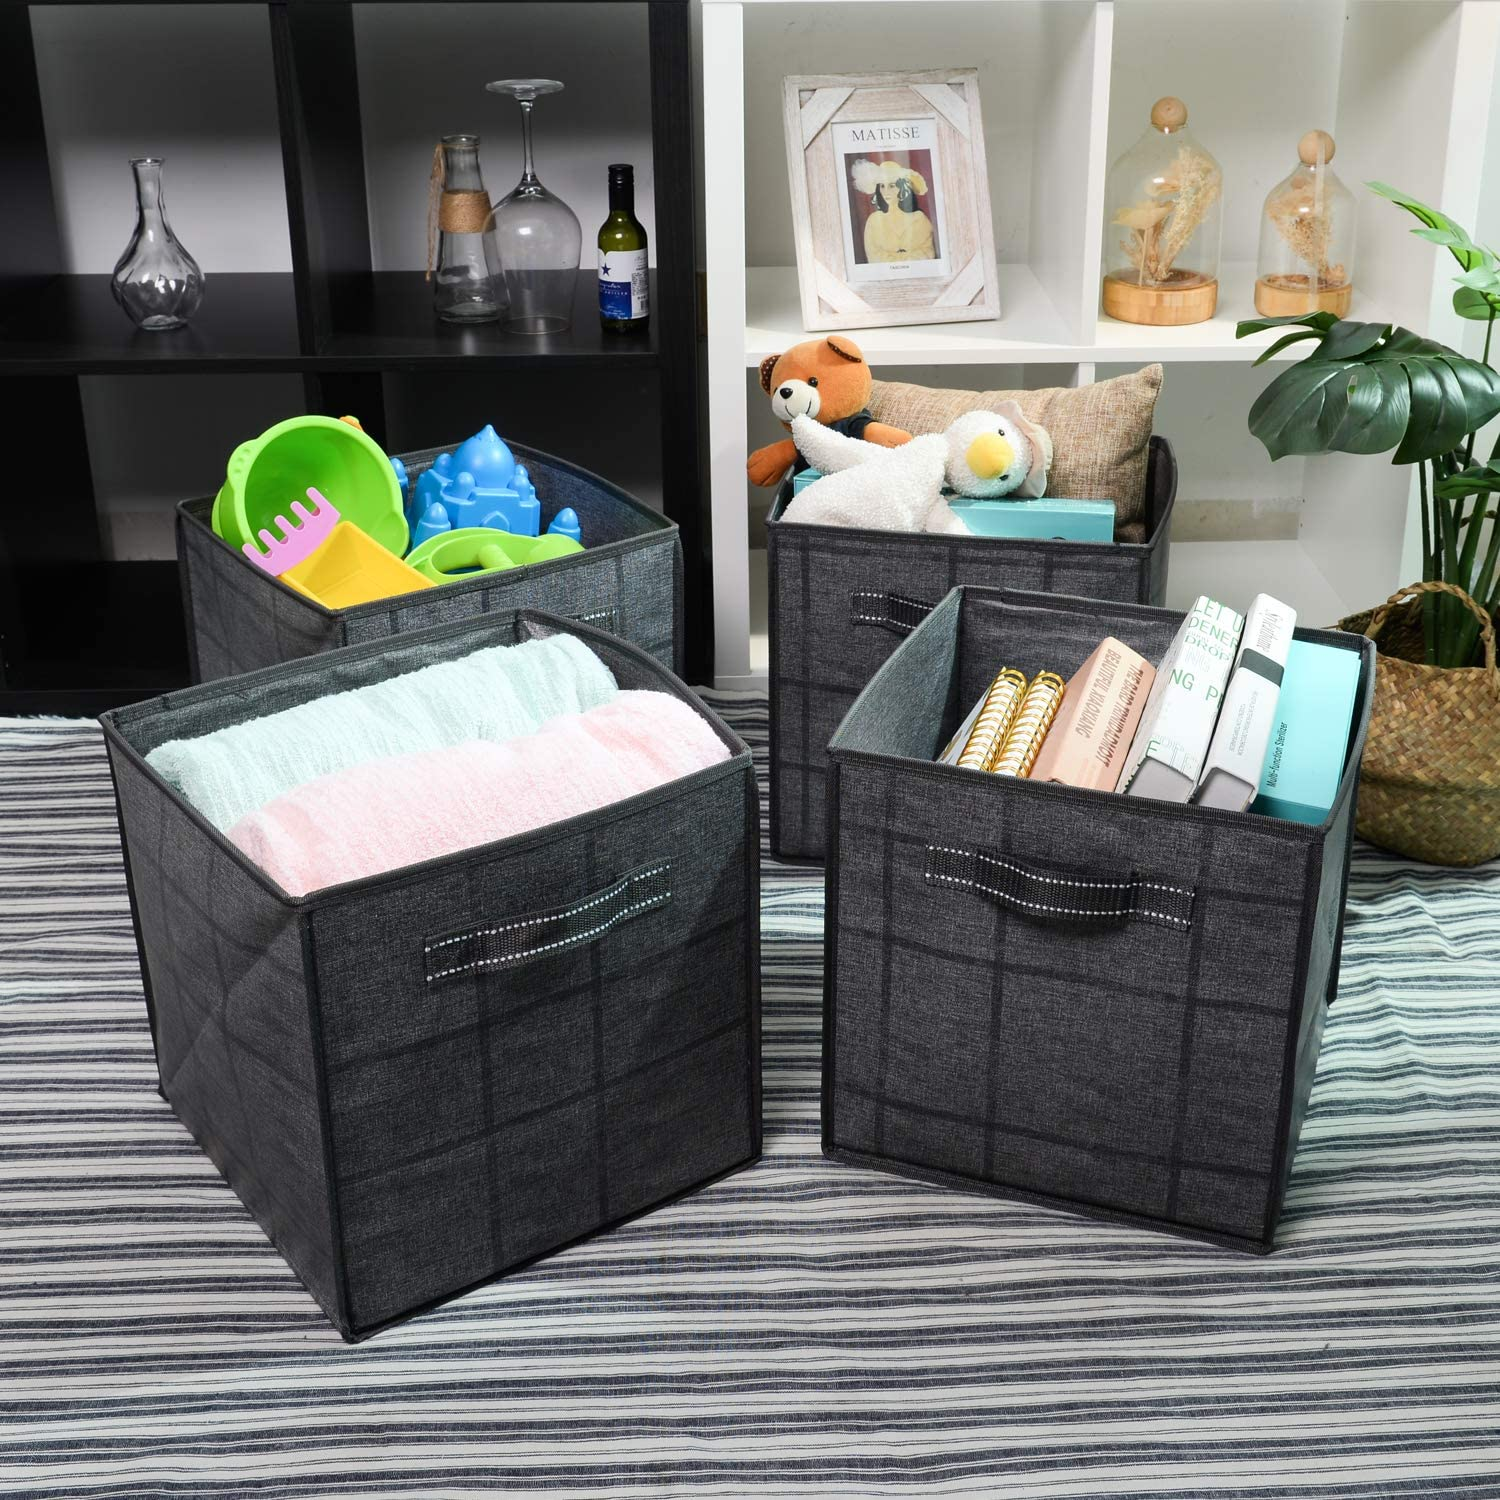 Made from Recycled Material VENO Foldable Storage Bin Cube Organizer Heavy-Duty Collapsible Basket with Handles for Toy Clothes Linen Sundry 10.5x10.5x10.5 Fits Shelving System 4-Pack Beige